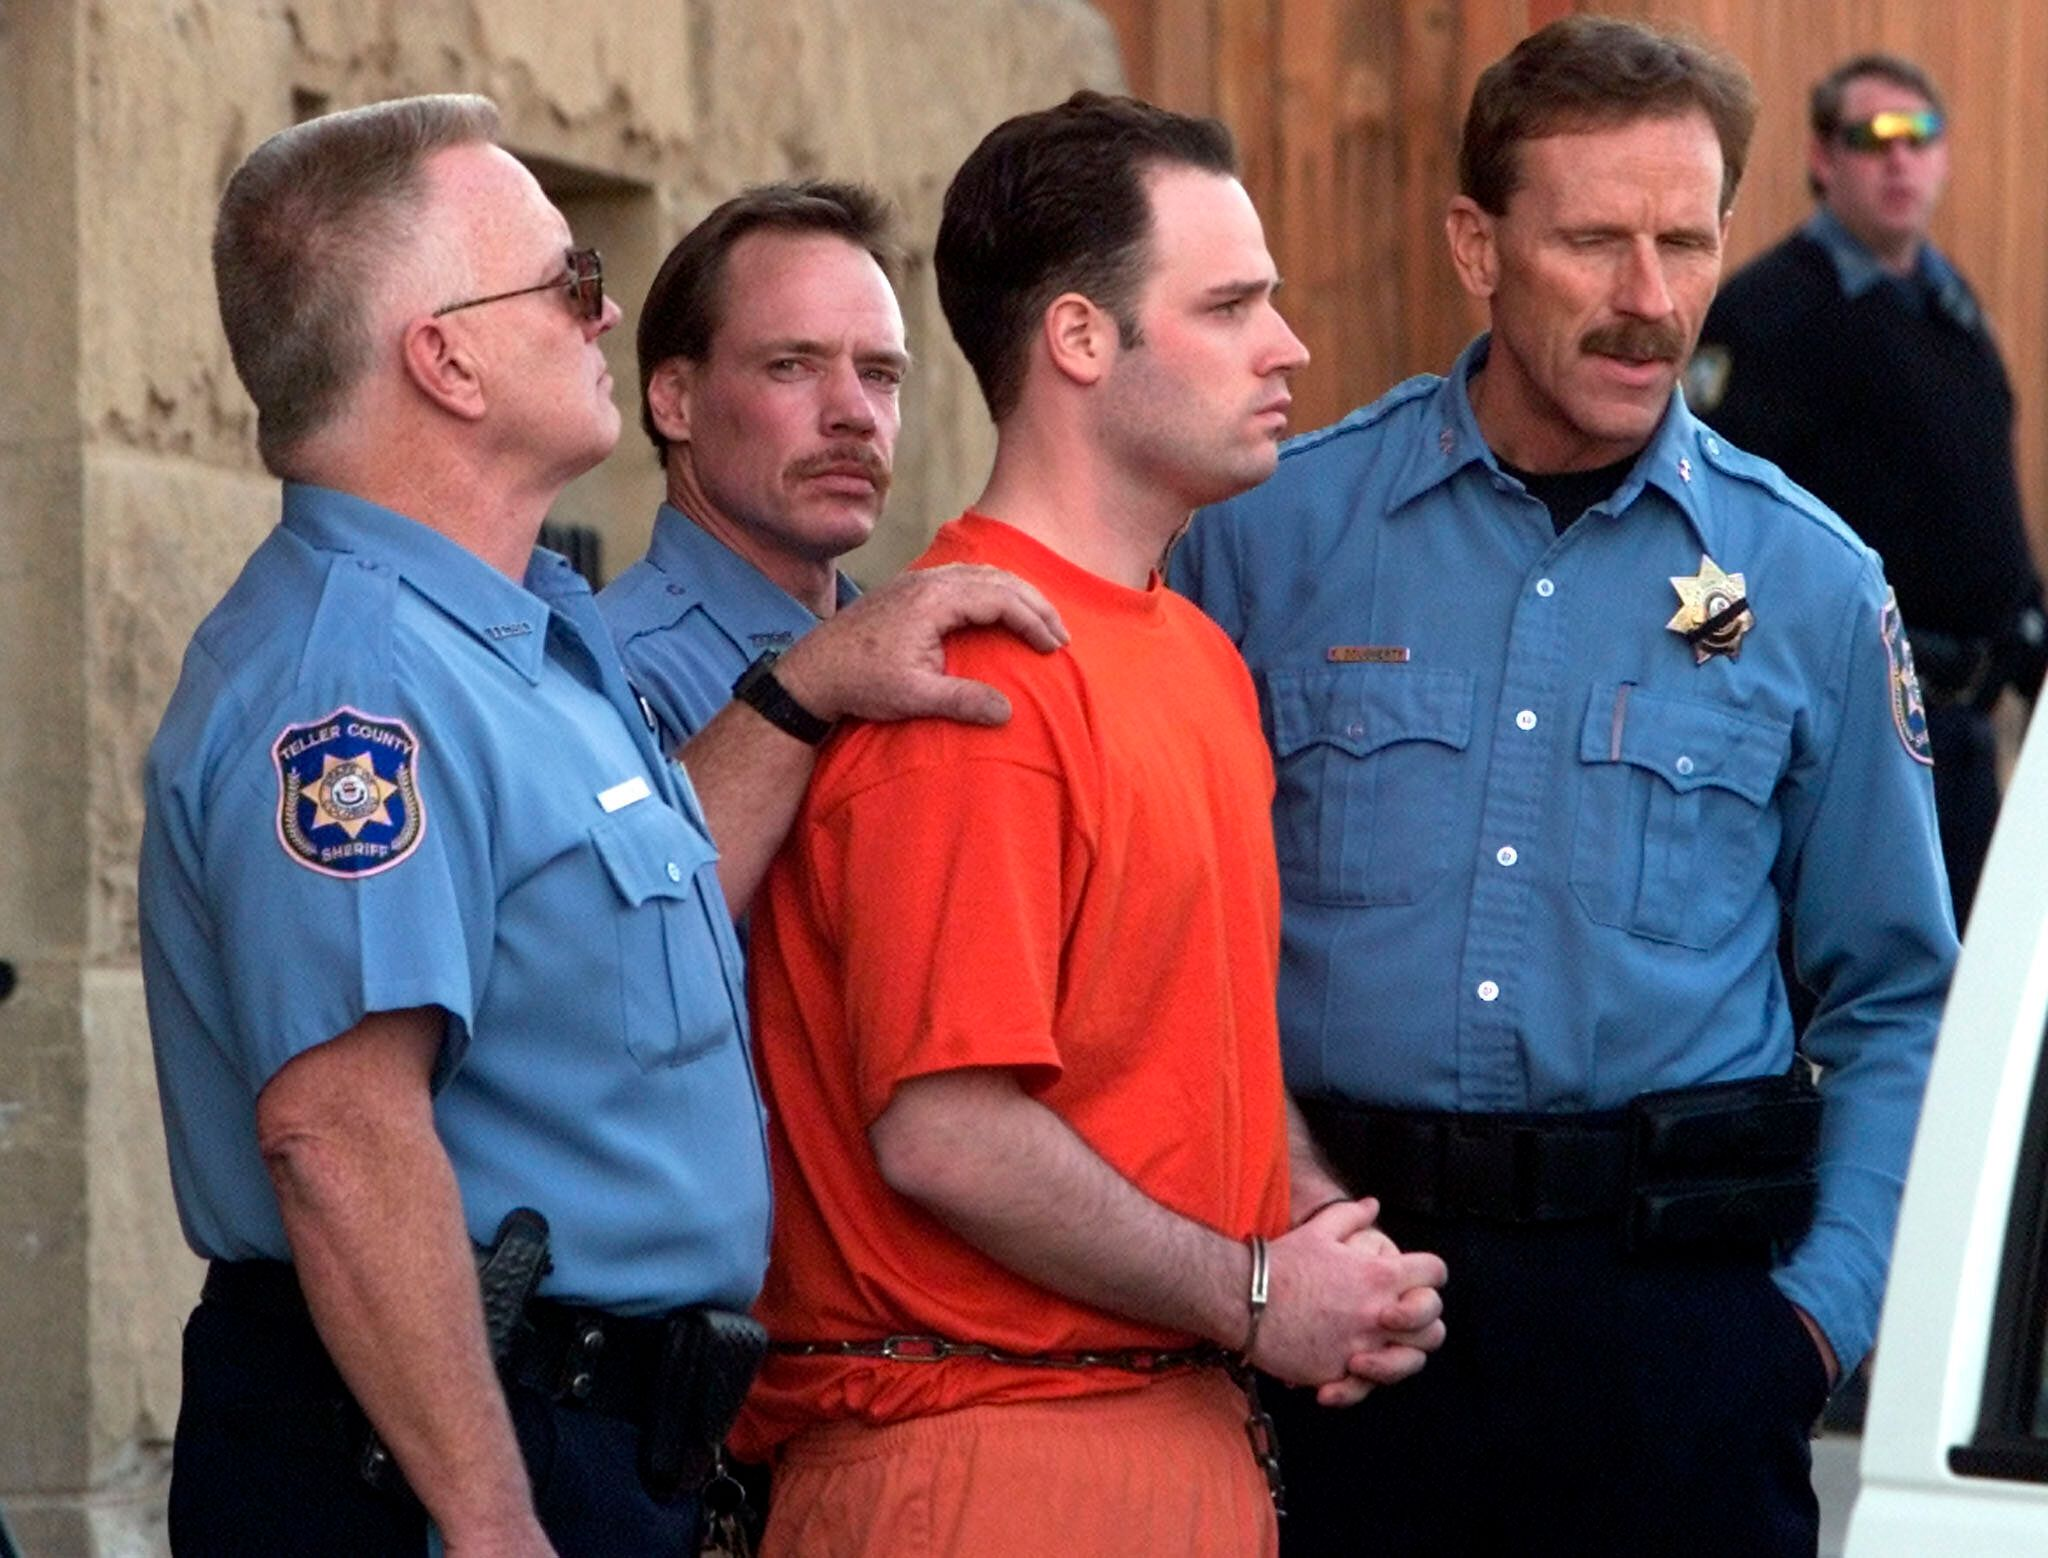 Randy Halprin, one of the Texas 7 prison escapees, is led out of the Teller County Courthouse after an extradition hearing in